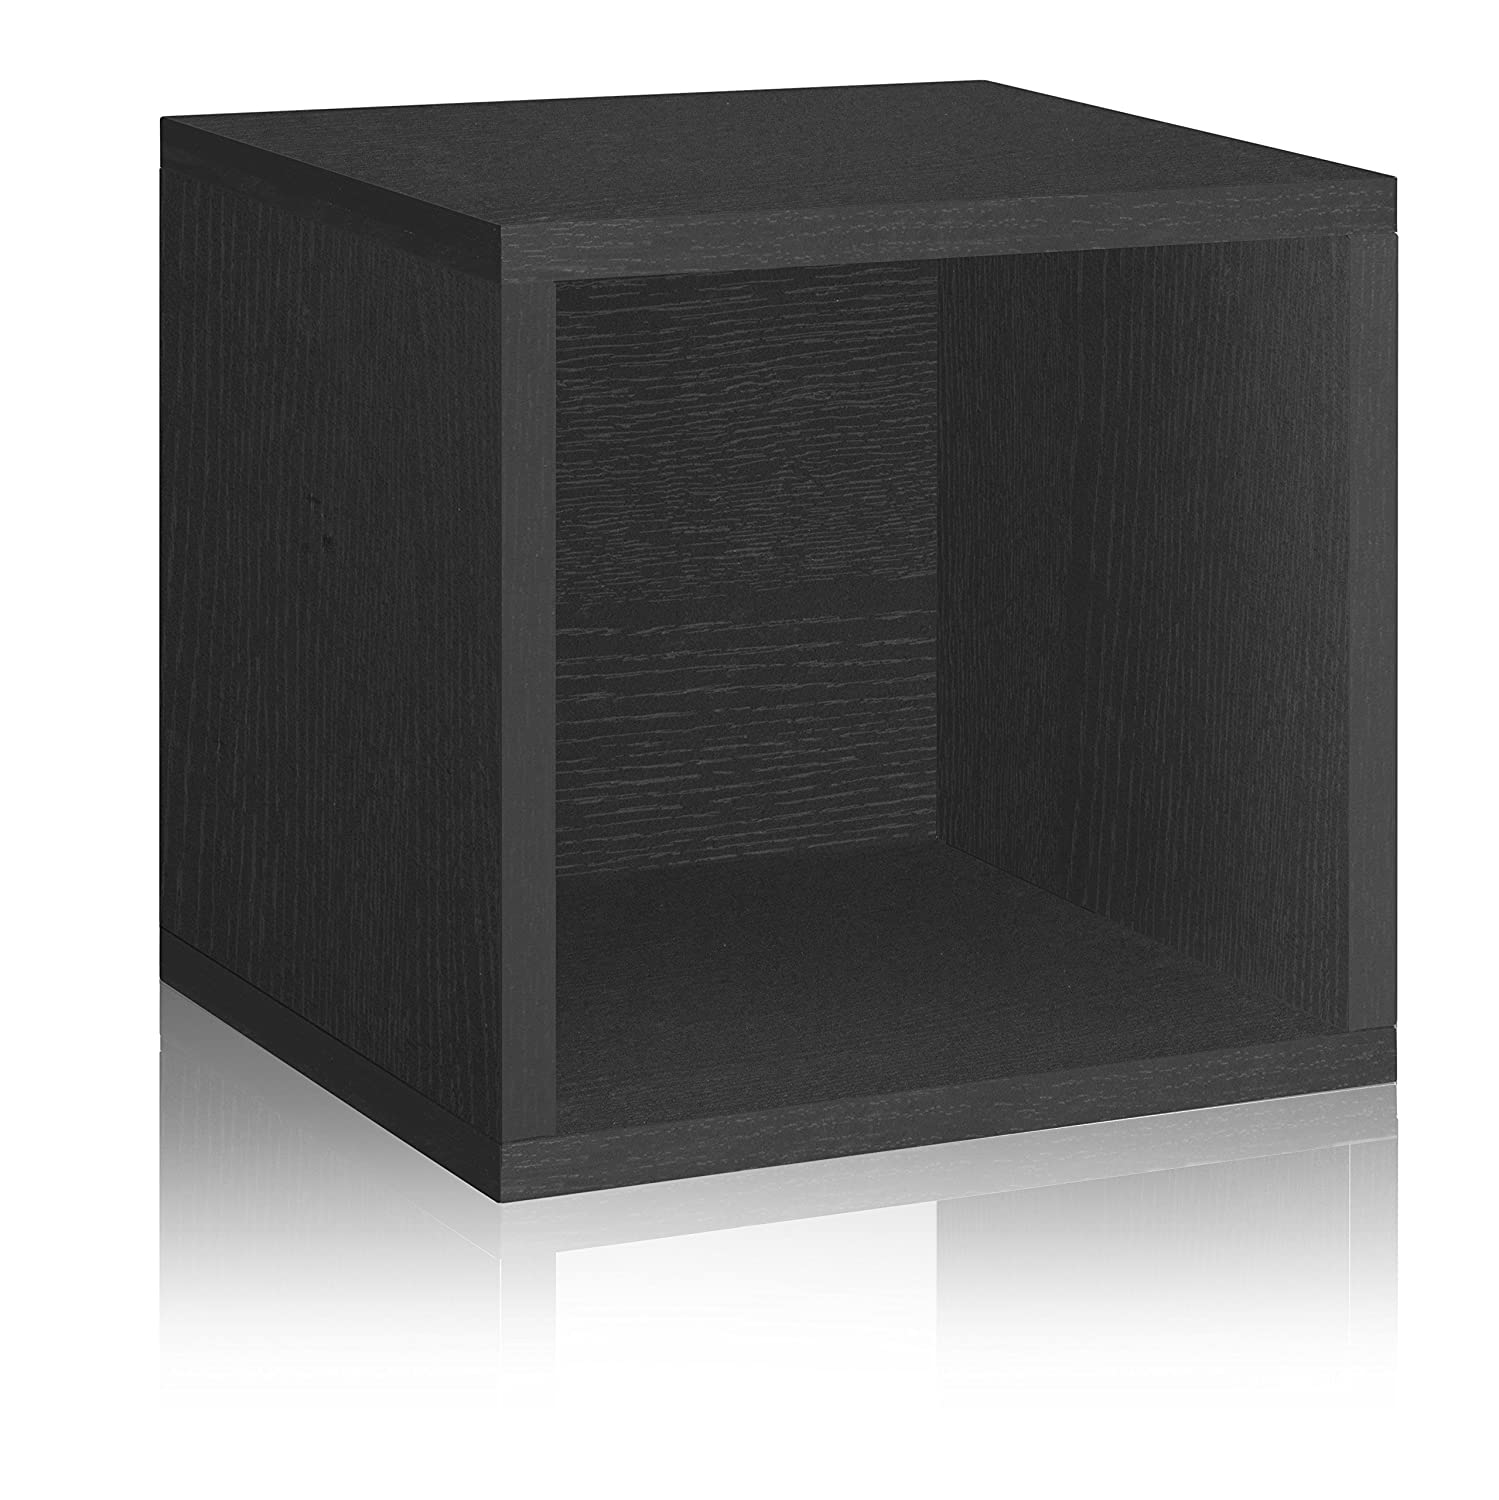 Renewed Way Basics 11.2 L x 13.4 W x 12.8 H Eco Stackable Storage Cube and Cubby Organizer Tool-Free Assembly and Uniquely Crafted from Sustainable Non Toxic zBoard paperboard Black Wood Grain